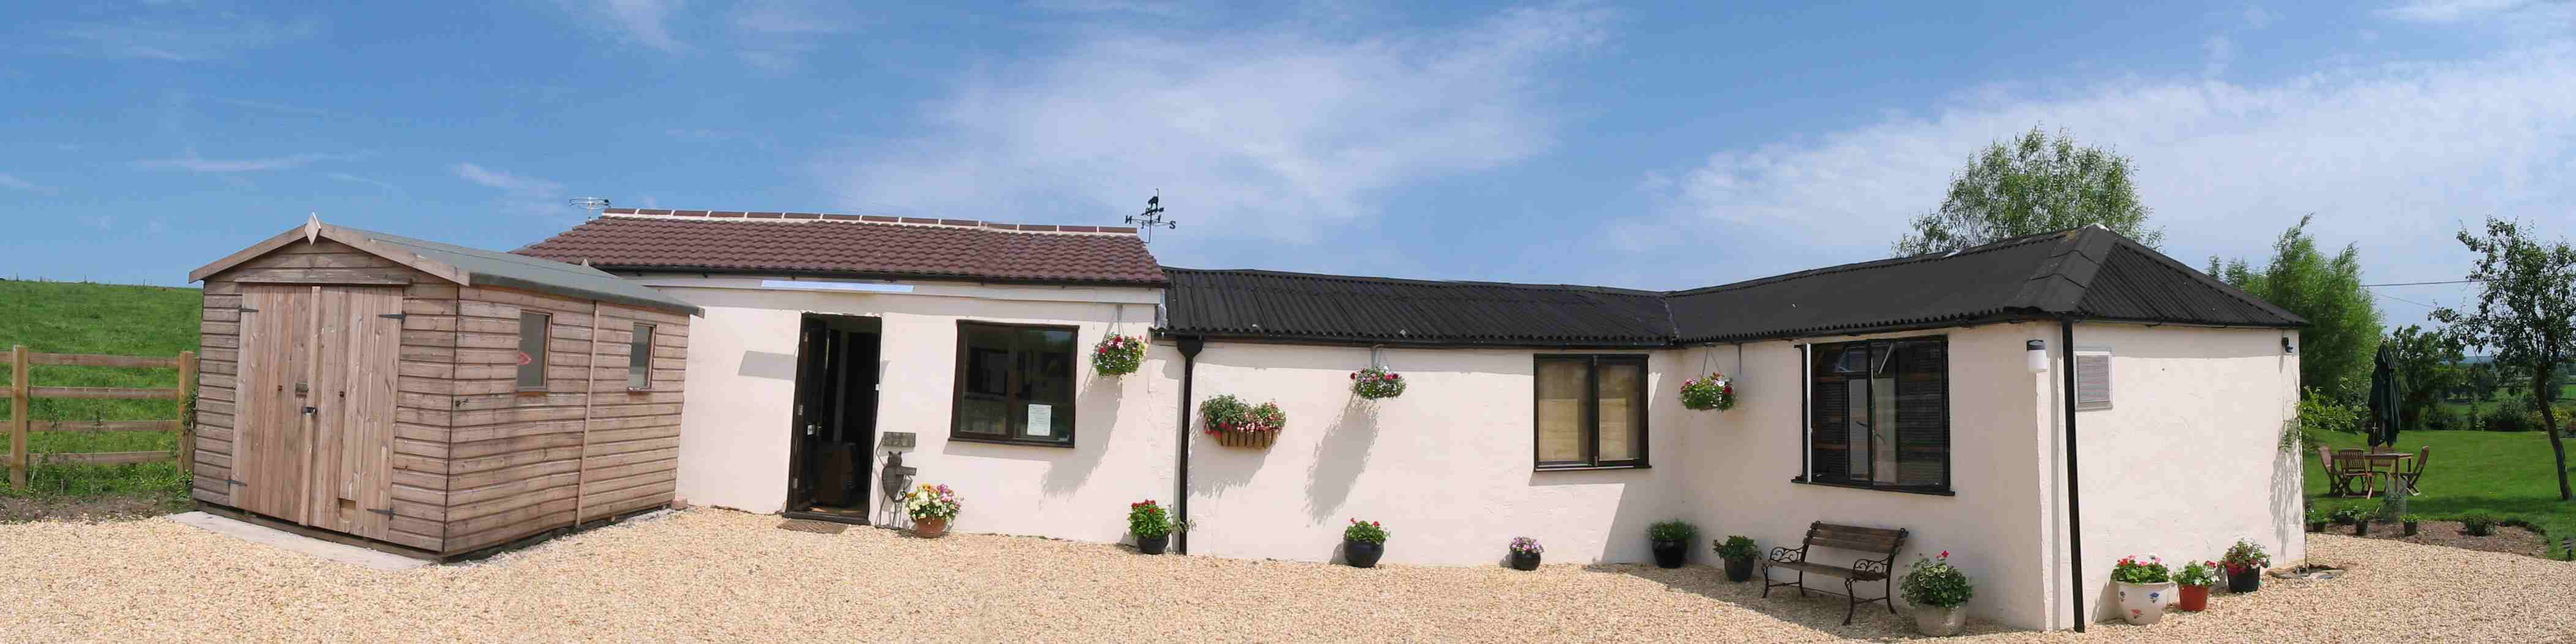 Cleeve Cats Cattery outside view - Seend